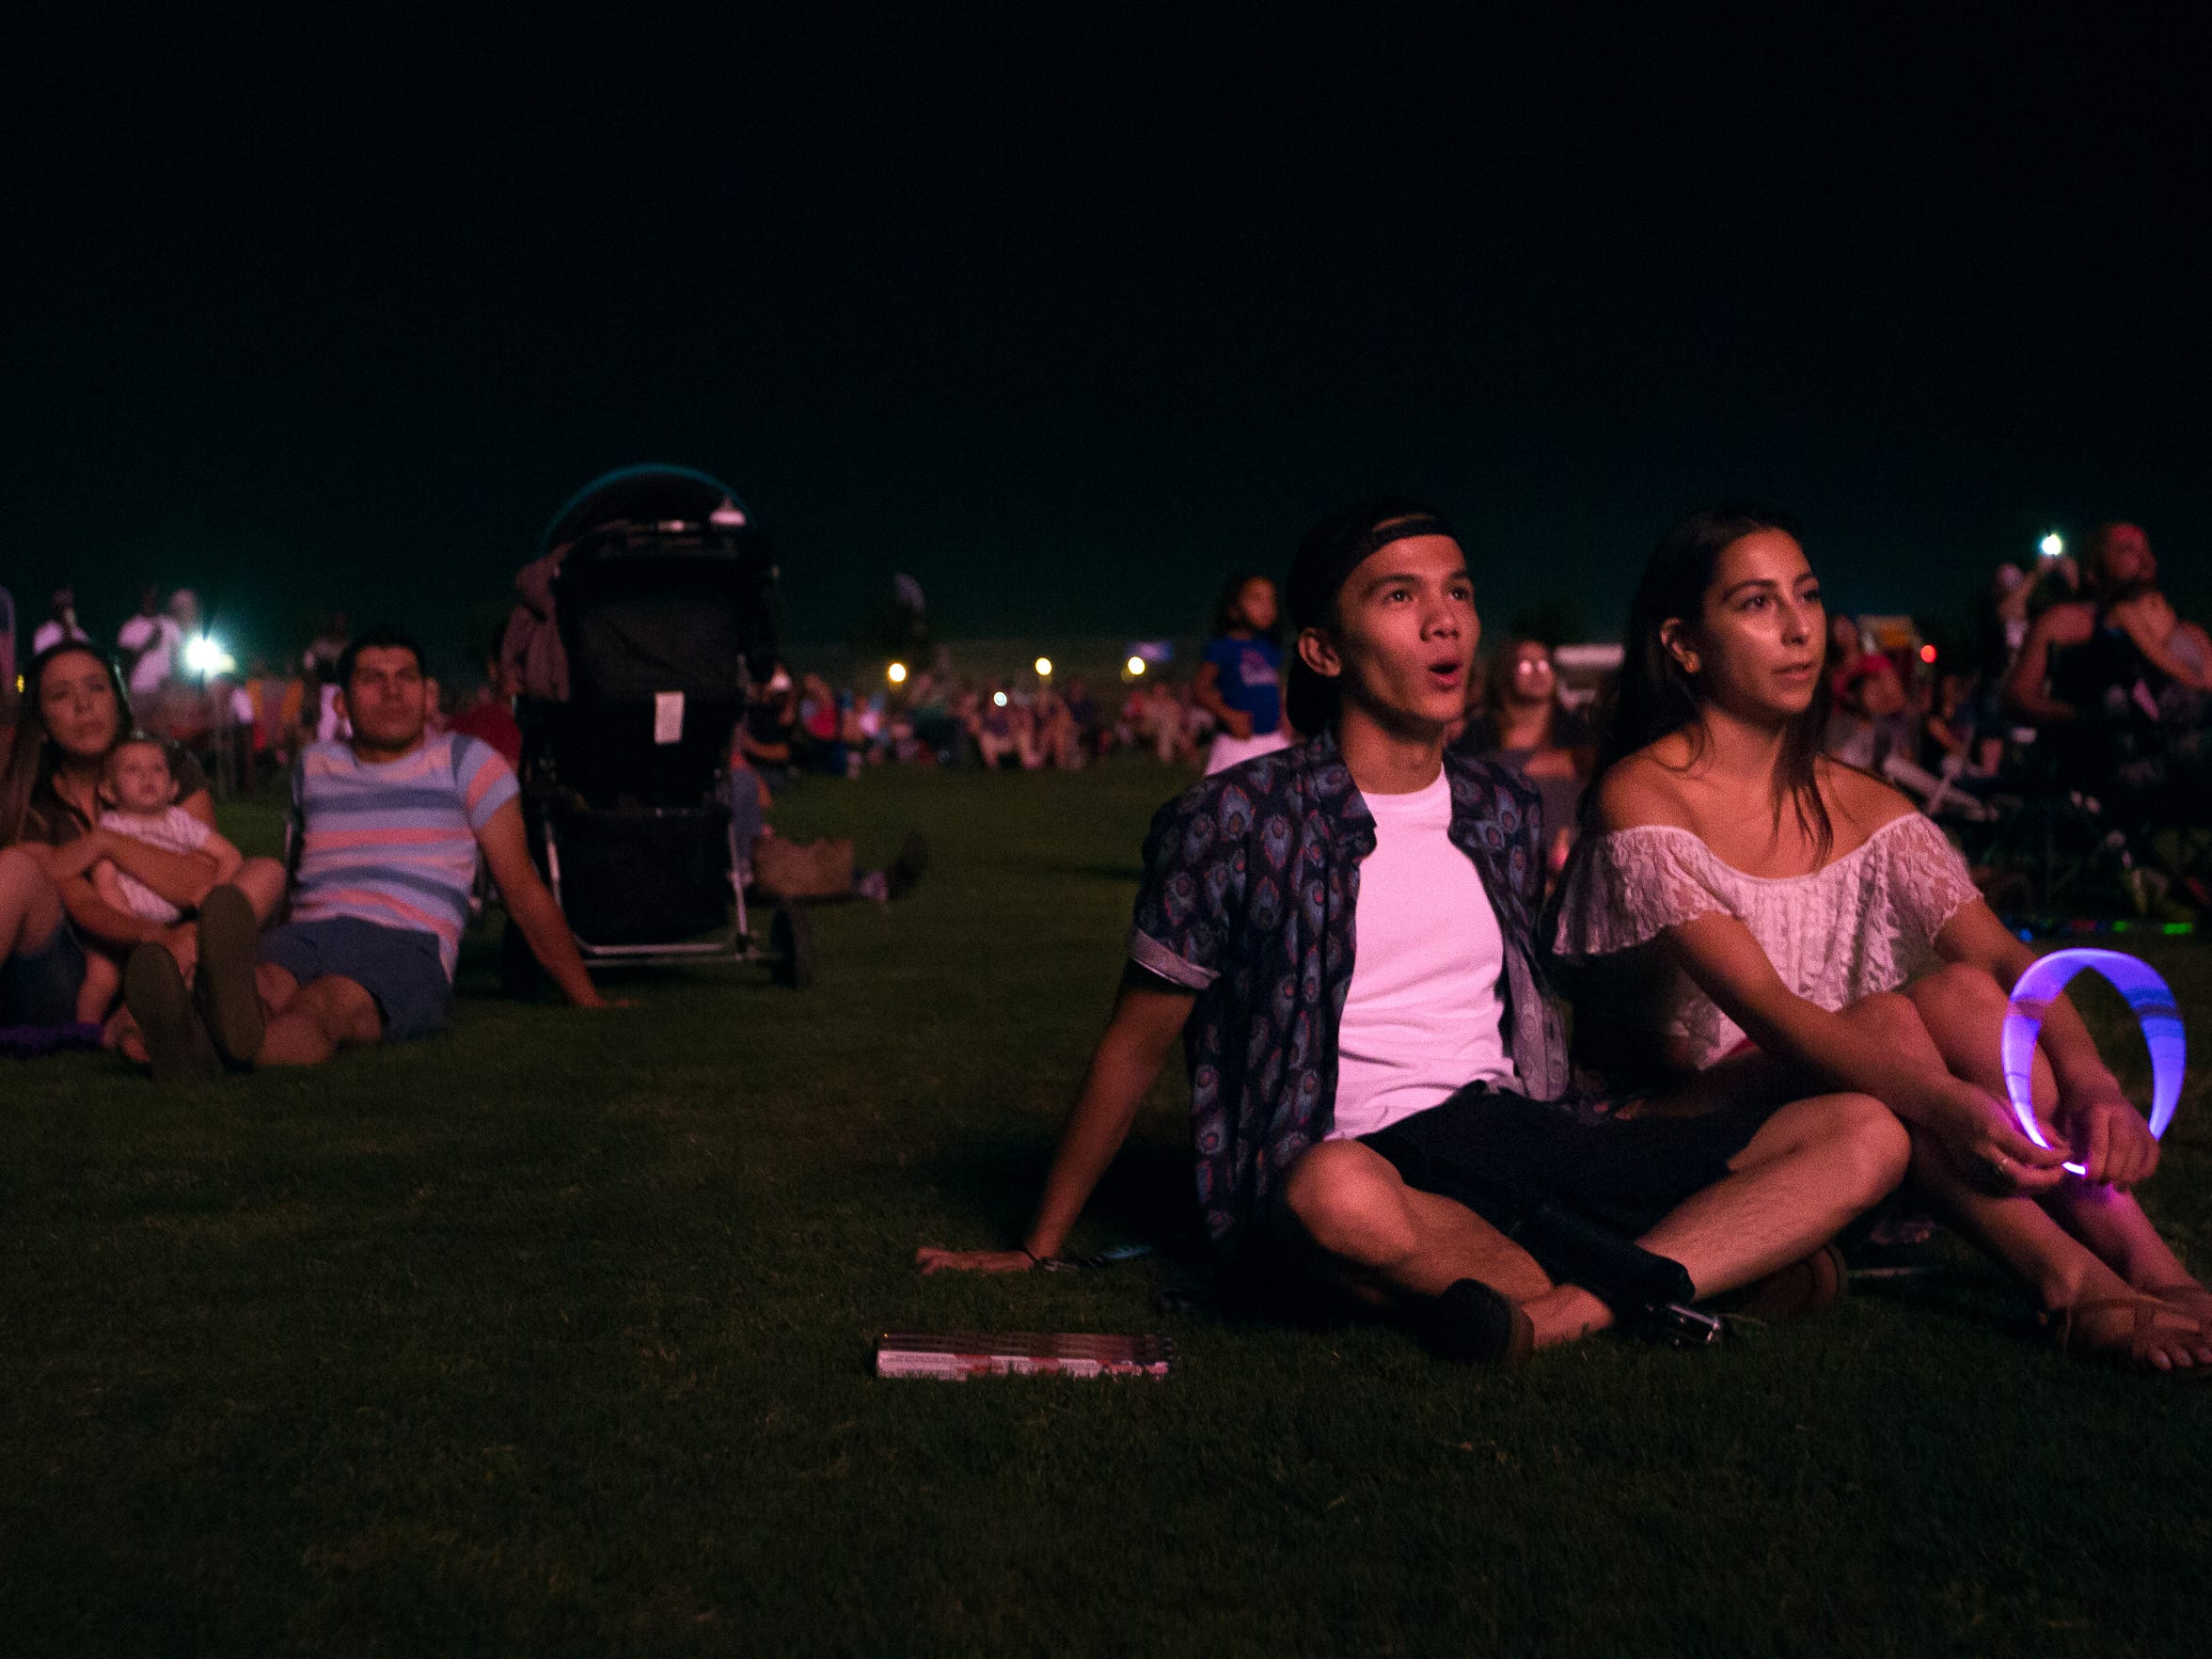 Ian Navarro, right, and Sabrina Flores watch fireworks go off at the Field of Dreams during the 2016 Fourth of July celebration.